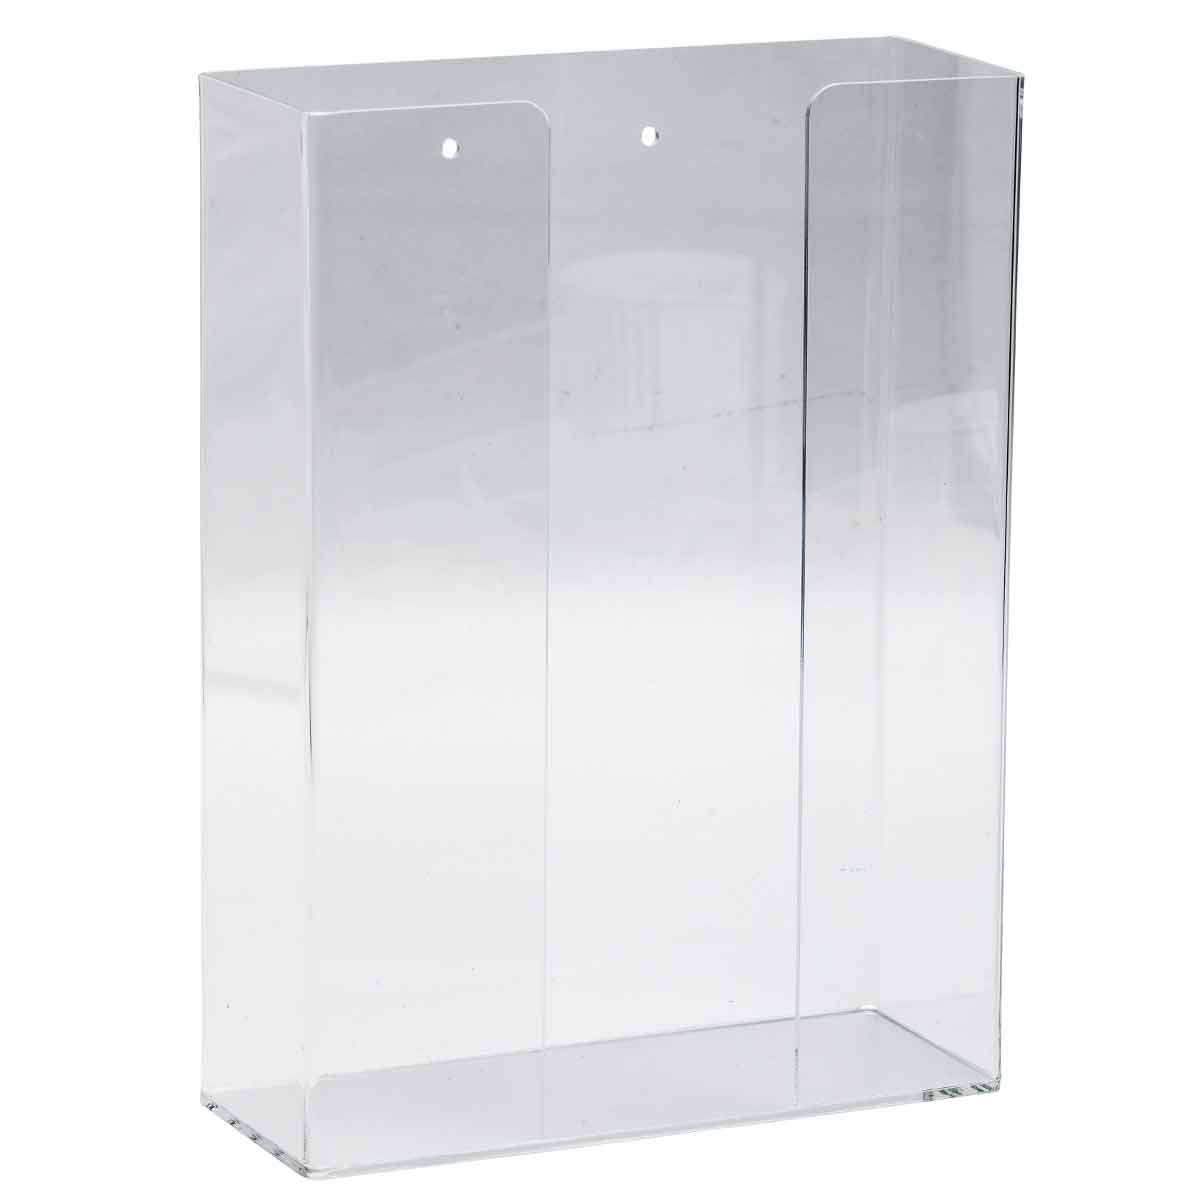 Brady® GD02 Double Box Glove Dispenser, 2-Compartment, Surface/Wall Mount, Hinged Top Dispensing, Acrylic Glass, Clear